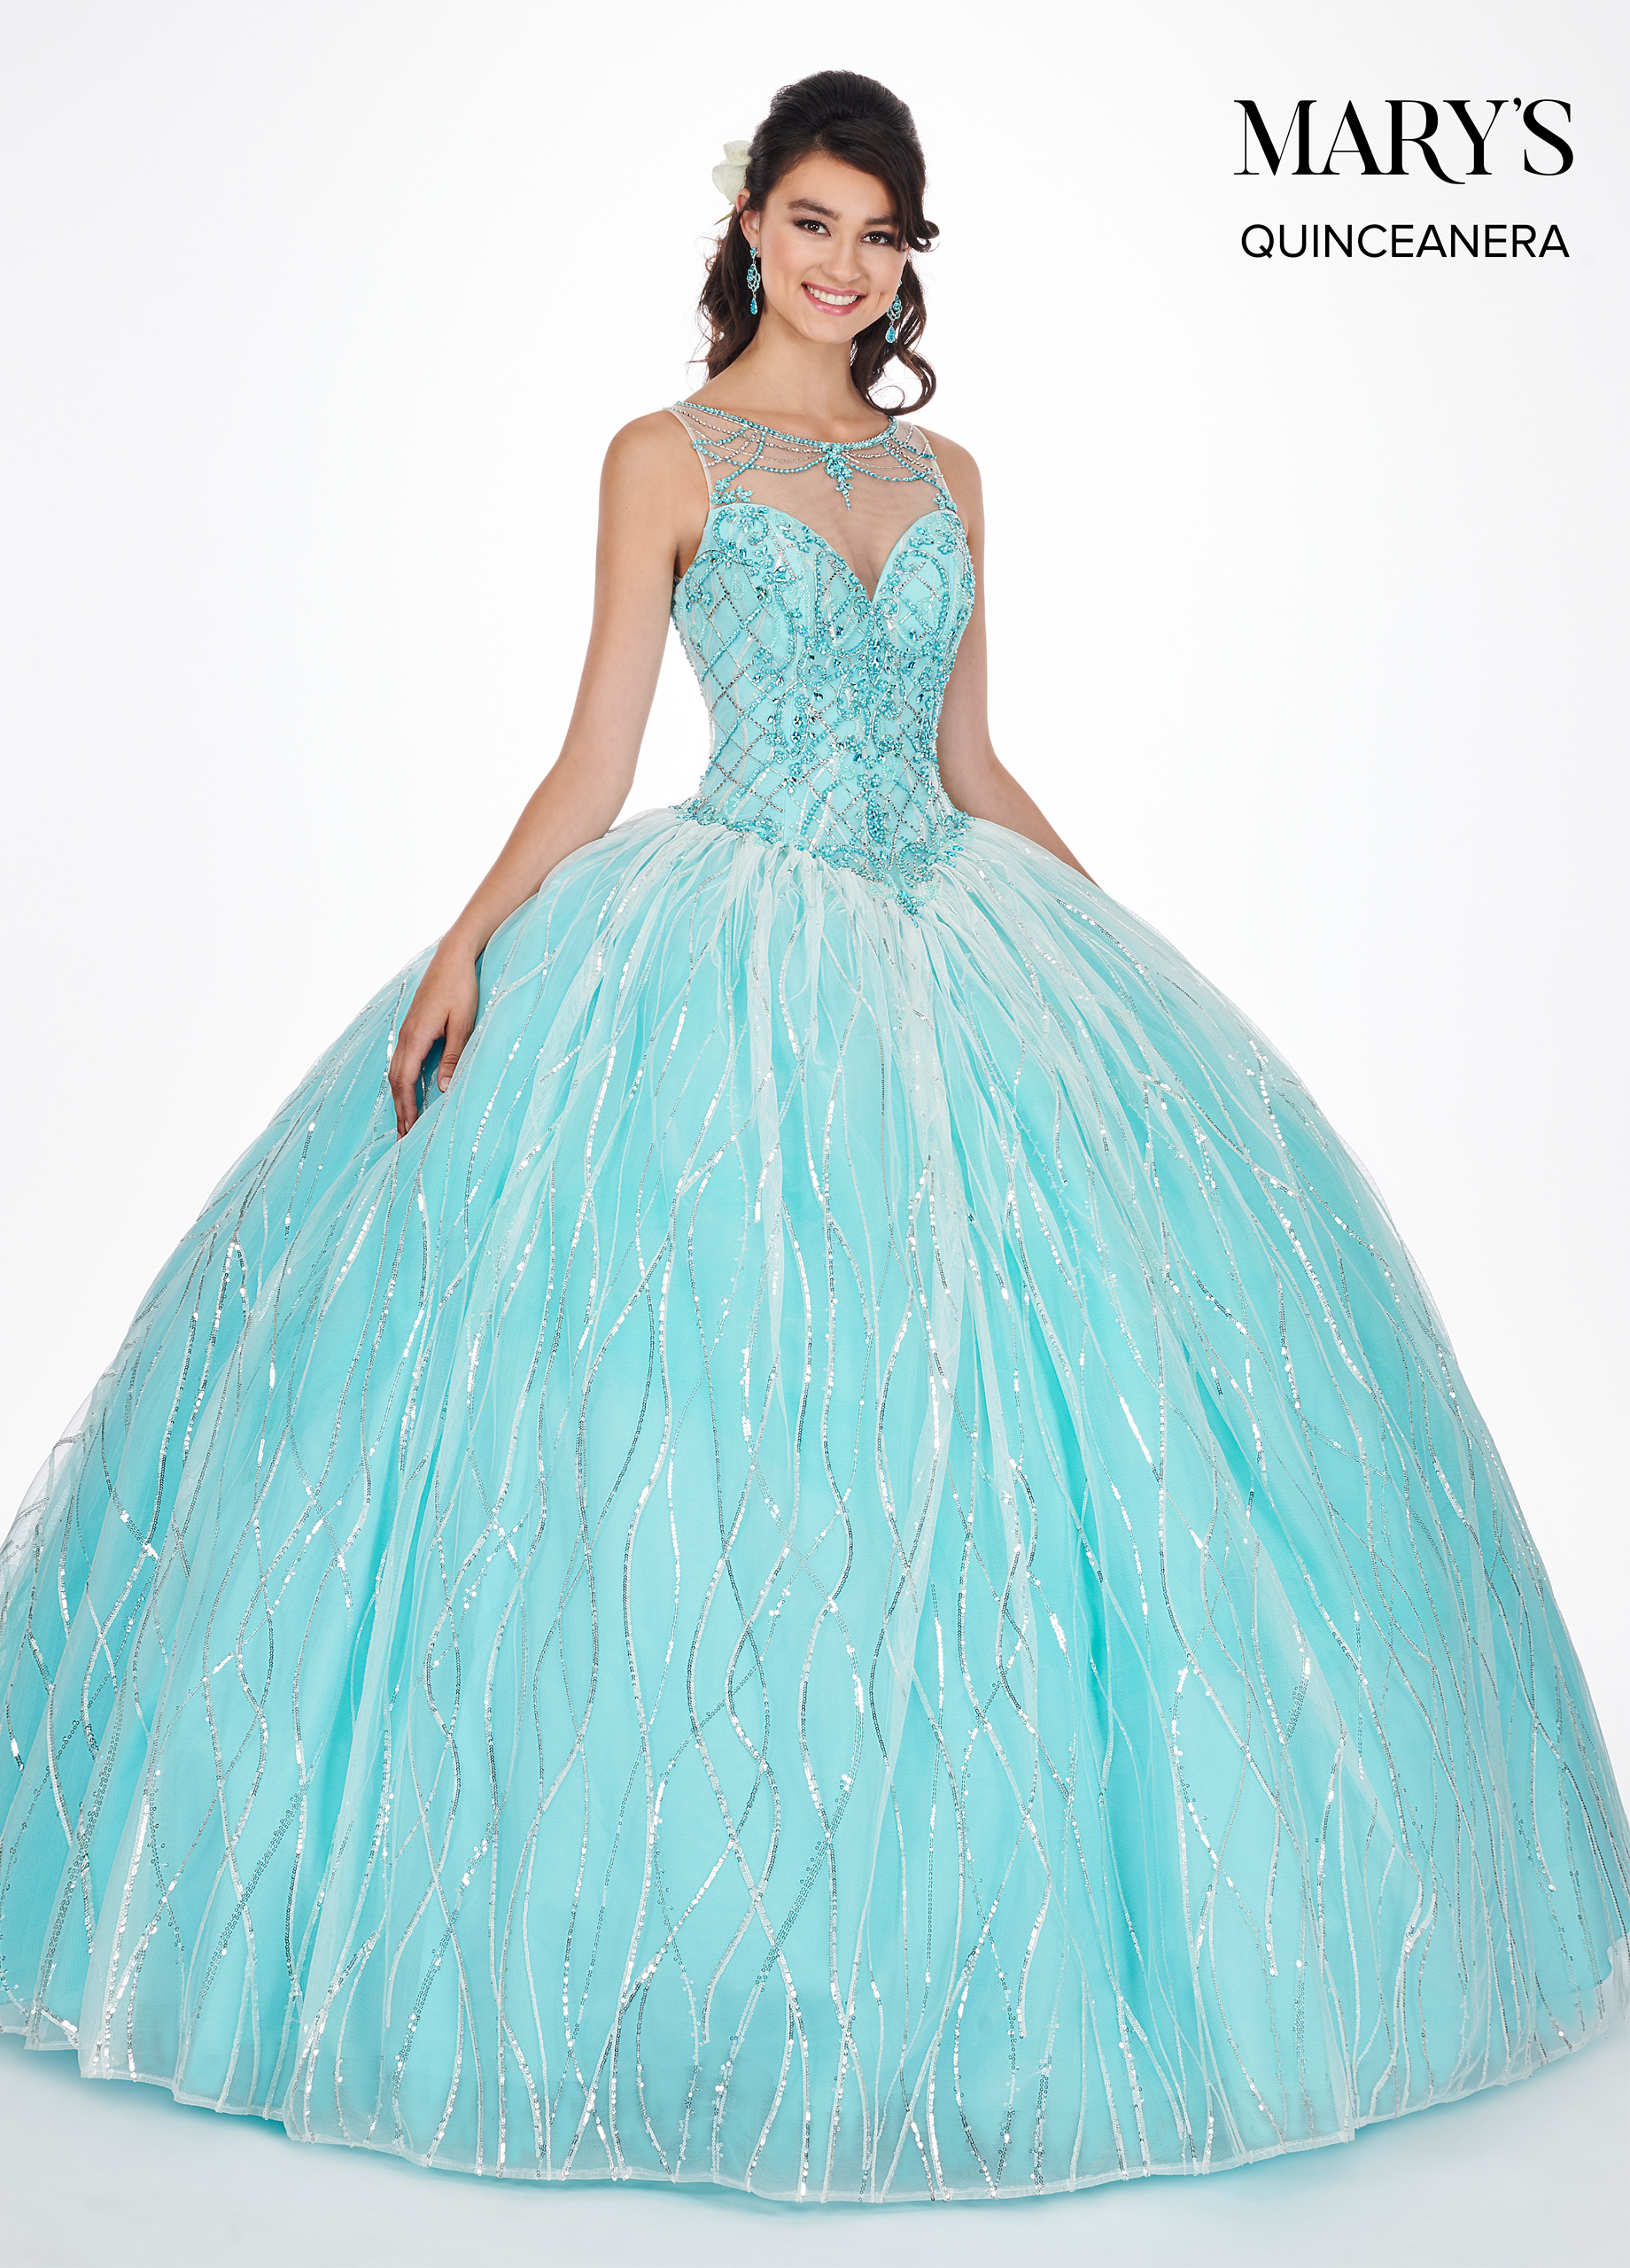 Marys Quinceanera Dresses | Mary's Quinceanera | Style - MQ2057